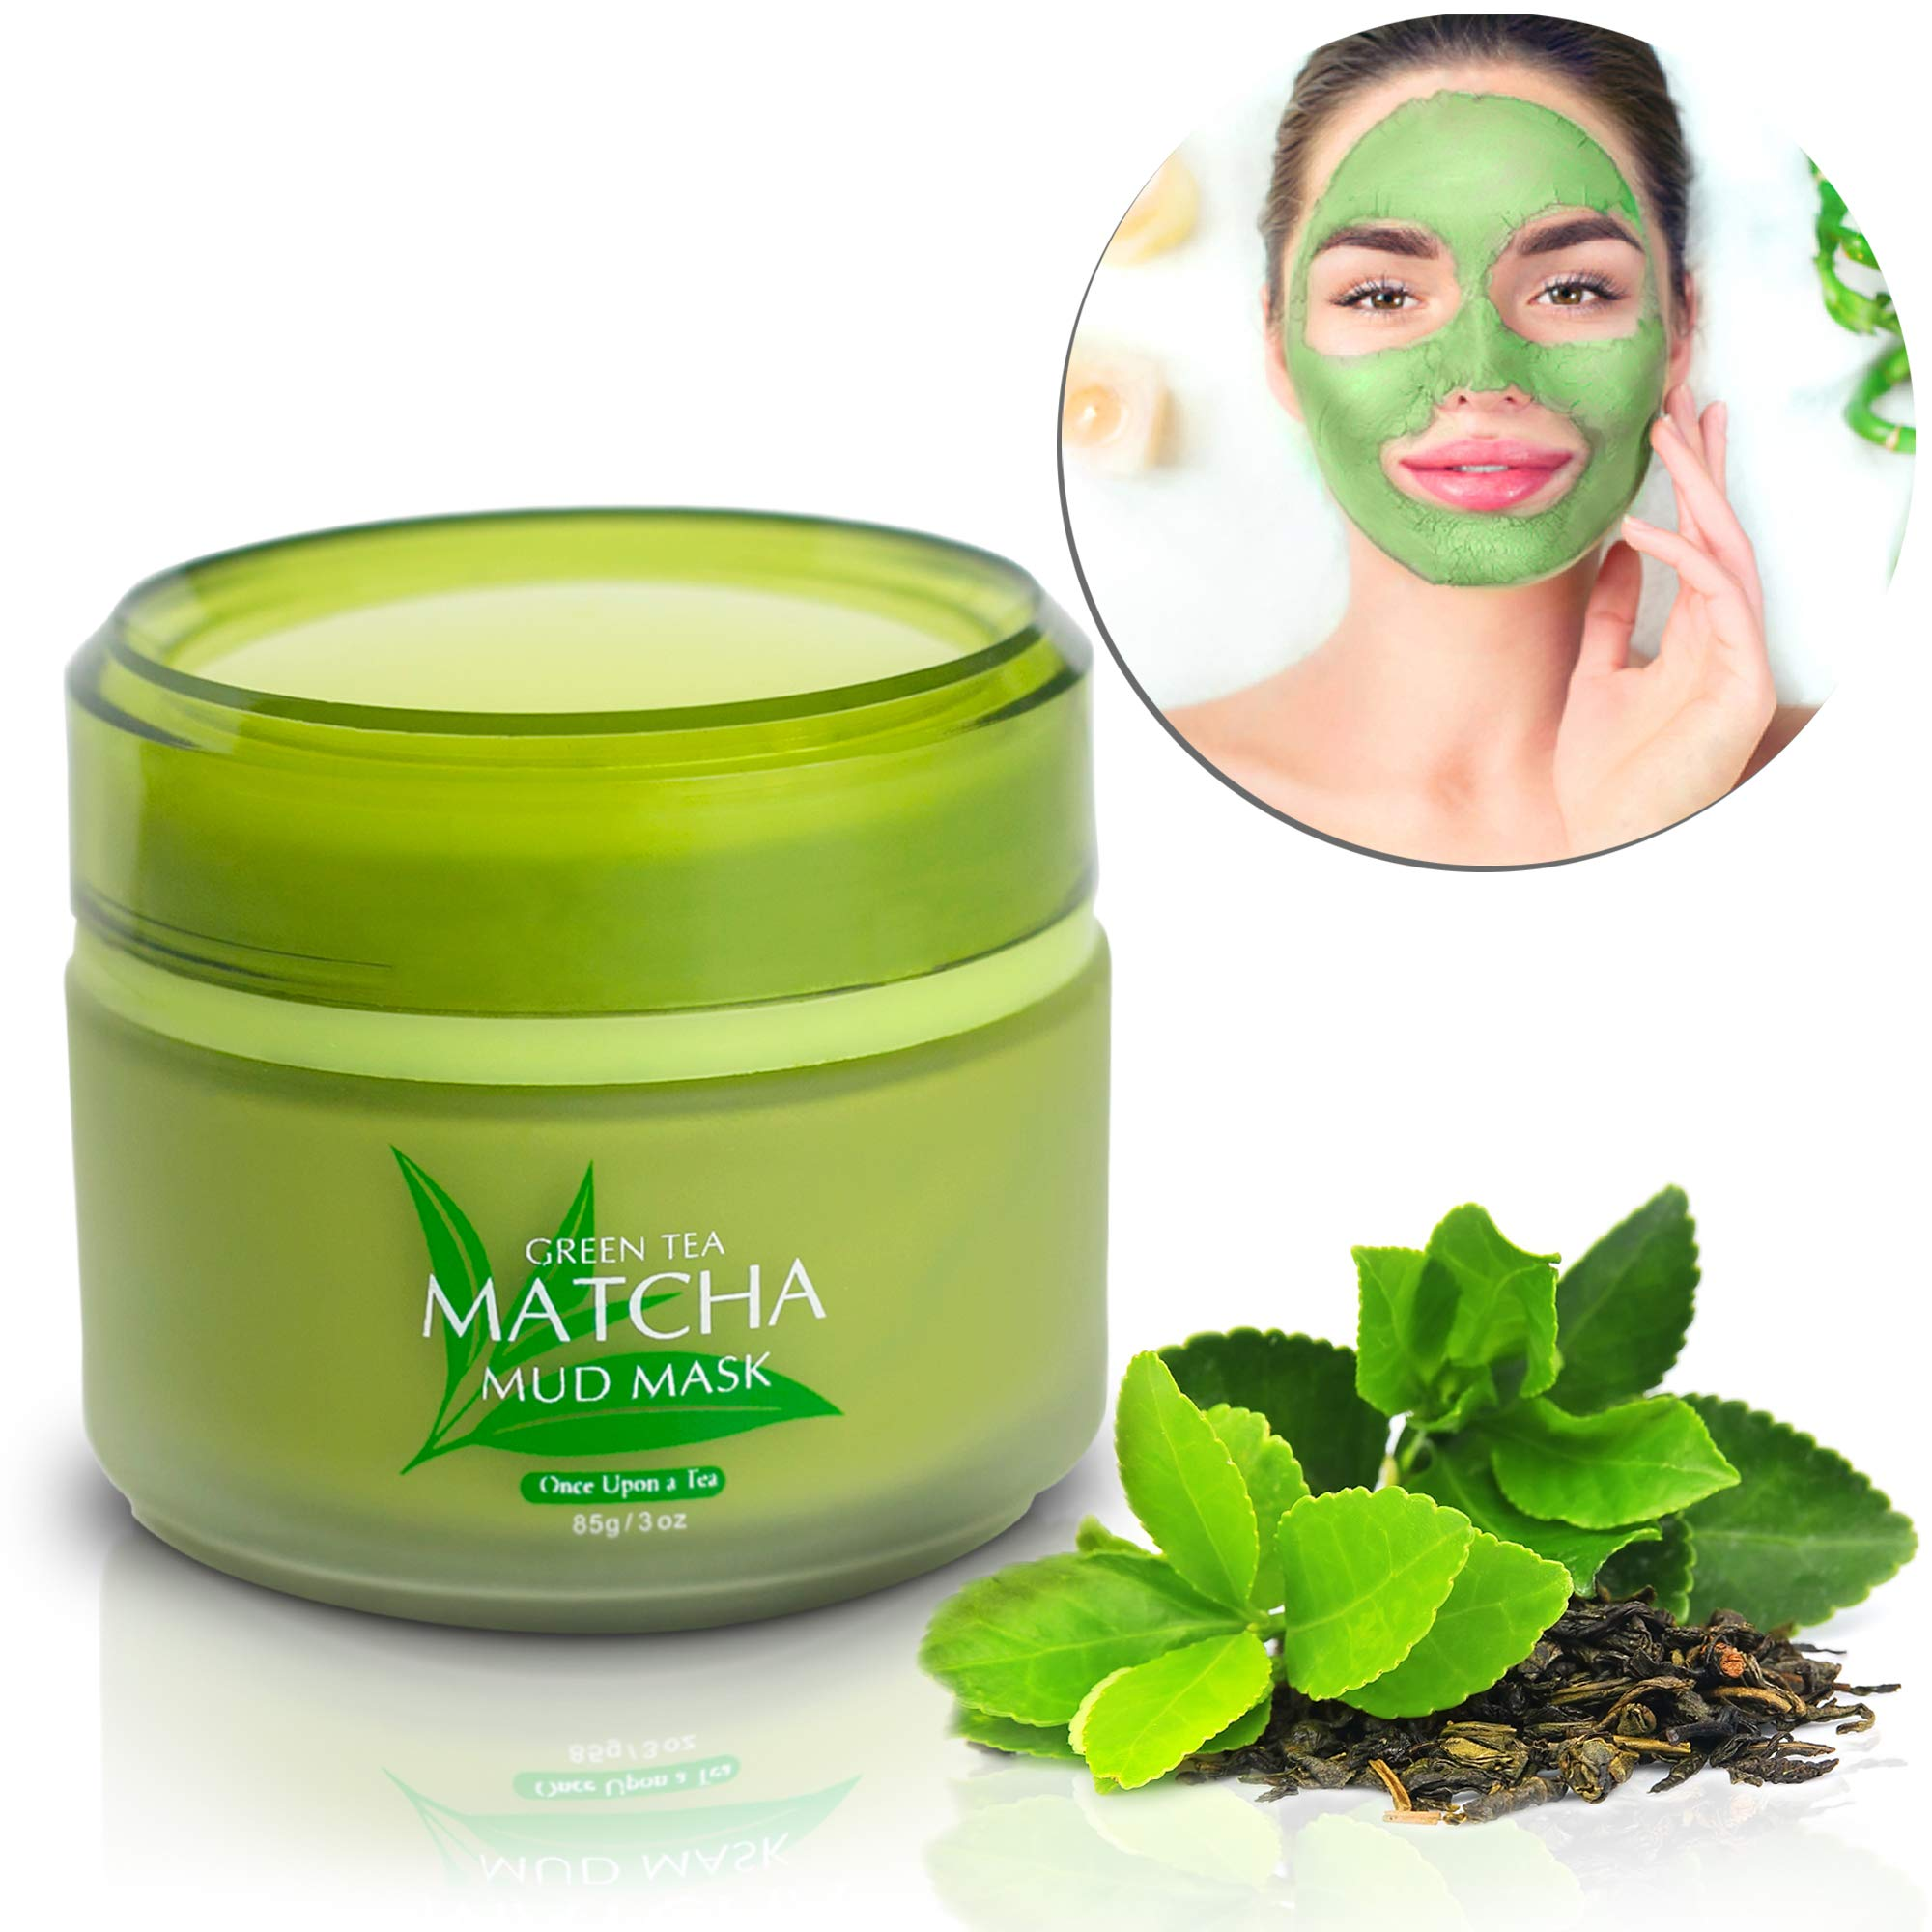 Green Tea Matcha Facial Mud Mask, Removes Blackheads, Reduces Wrinkles, Nourishing, Moisturizing, Improves Overall Complexion, Best Antioxidant, Skin Lightening & Anti Aging, All Skin Face Types by Once Upon A Tea